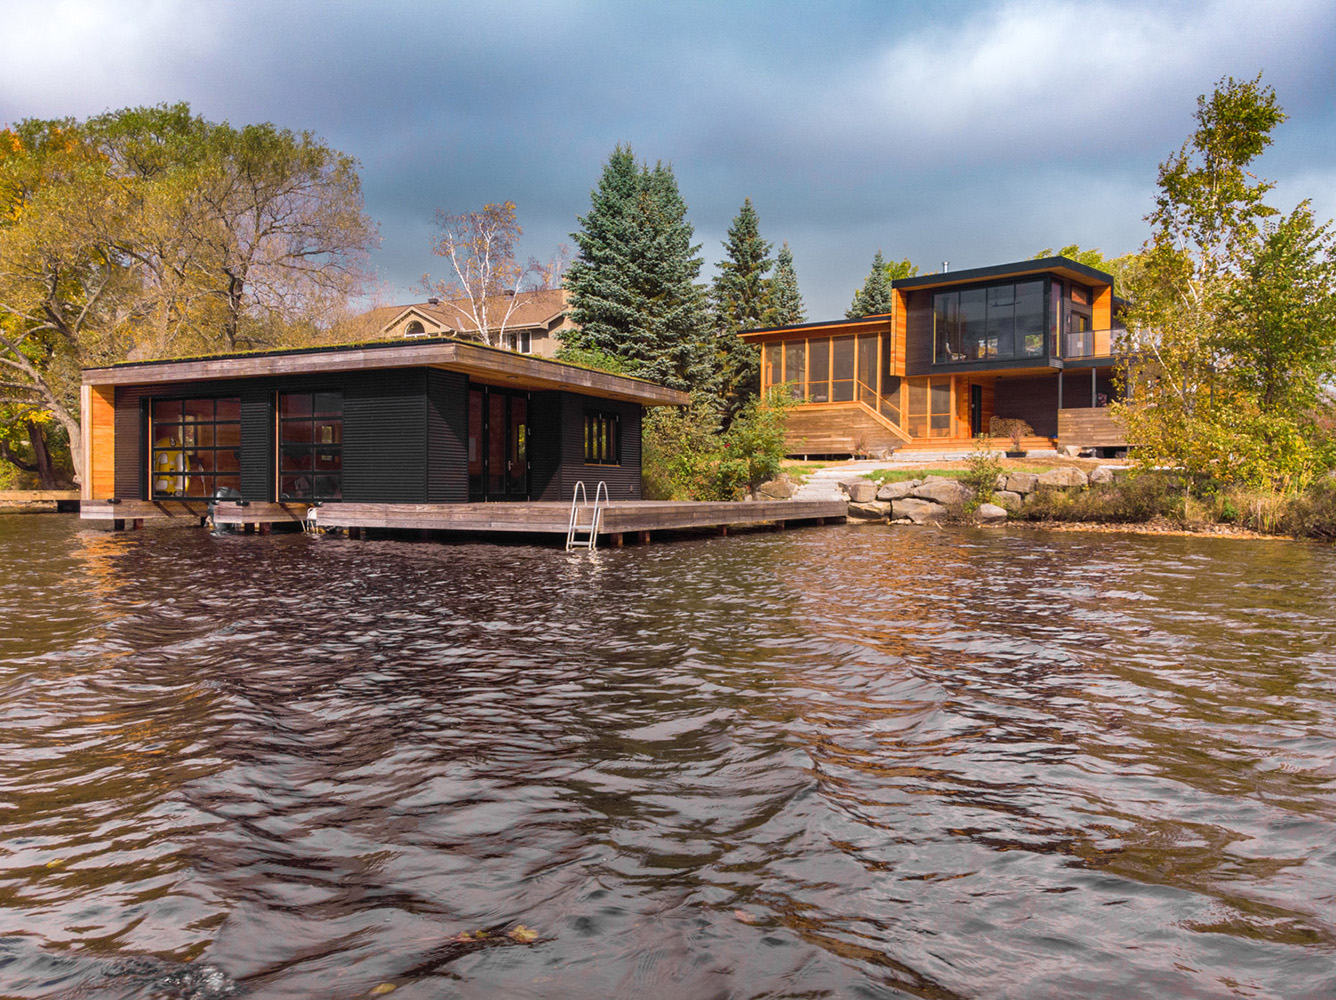 Muskoka cottage and boathouse with steel and poplar siding